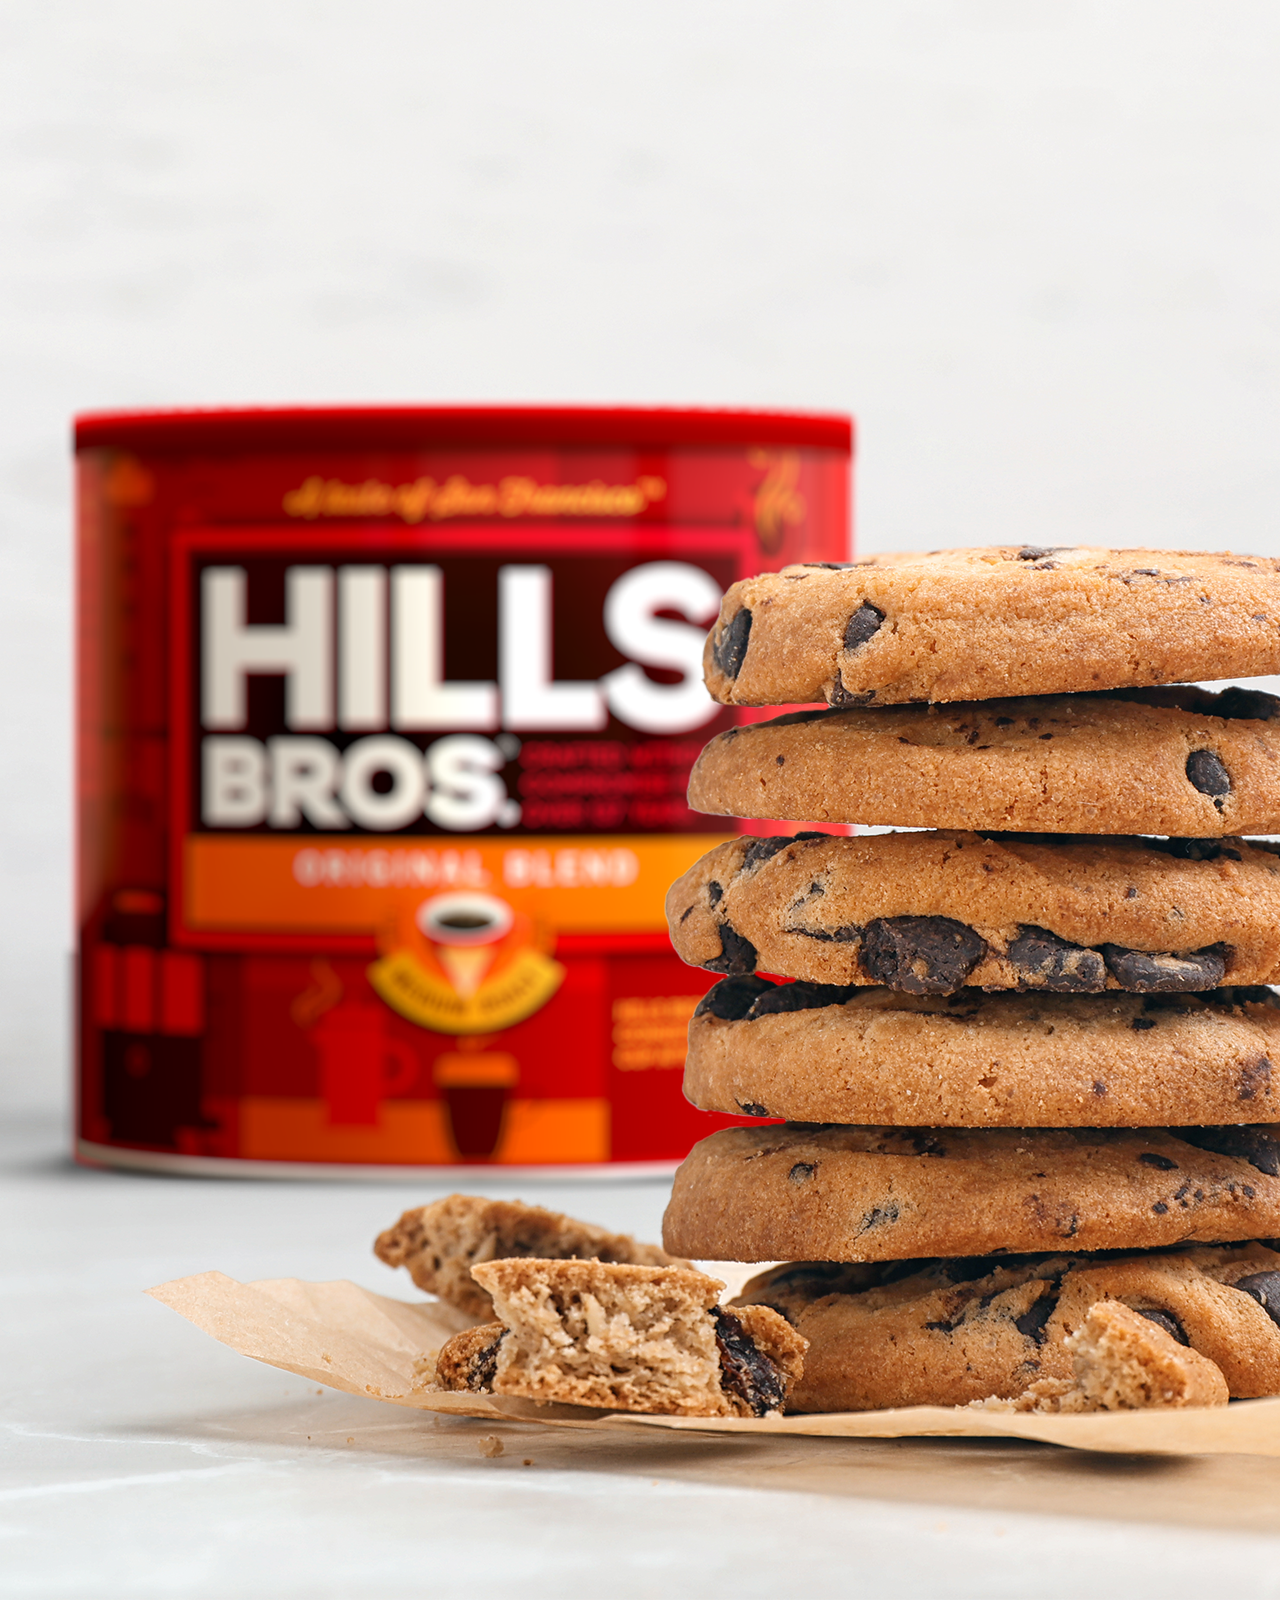 Chocolate Chip Cookies in front of Hills Bros Coffee Tin